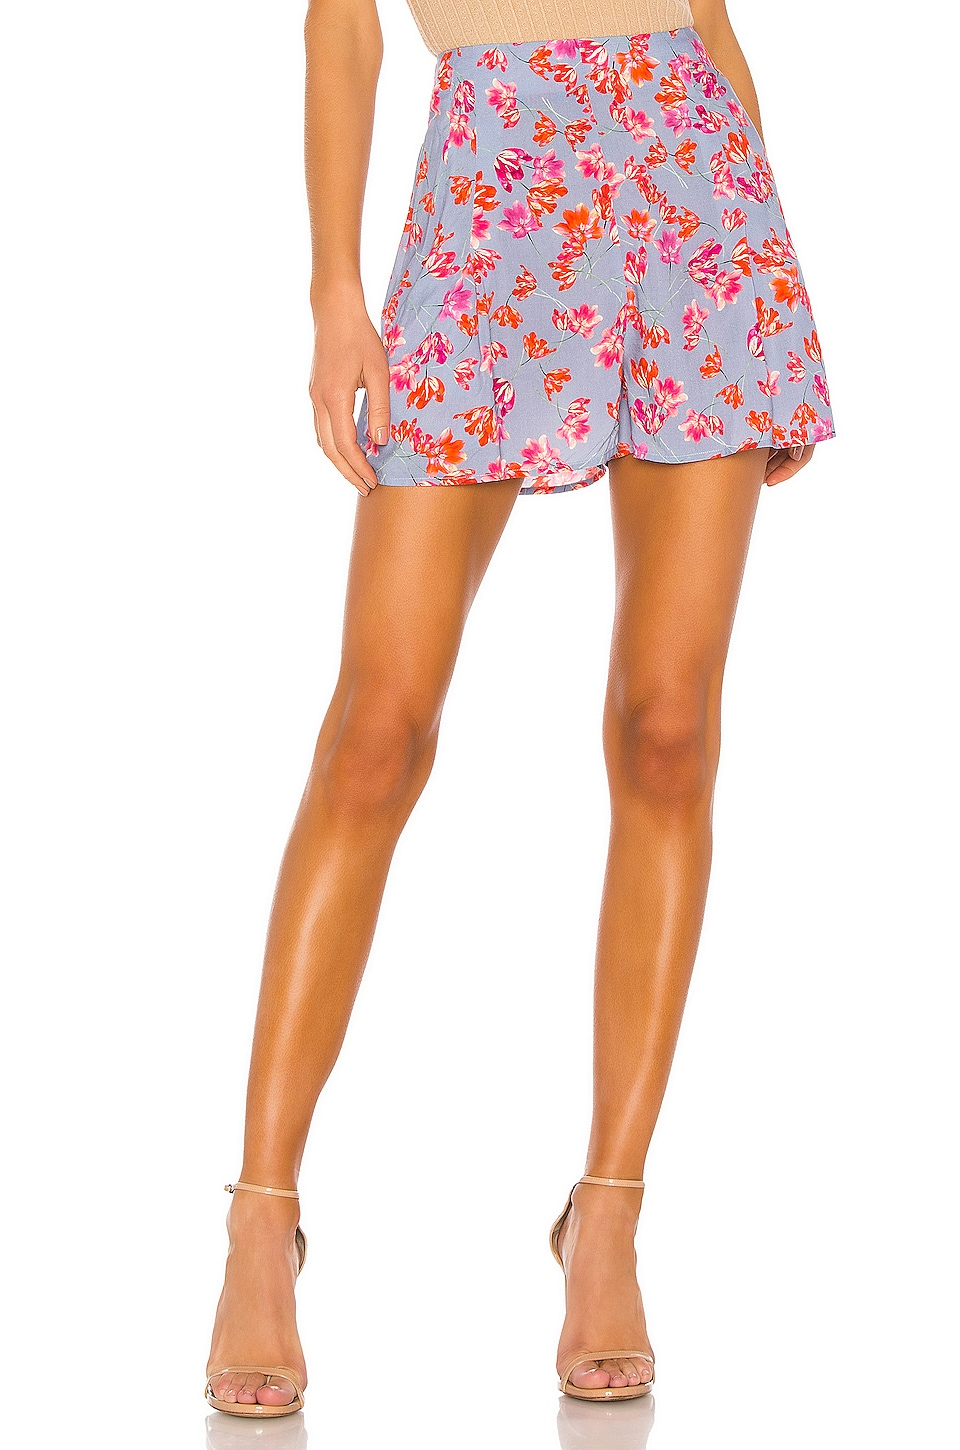 Hofmann Copenhagen Michelle Short in Pacific Blue Print